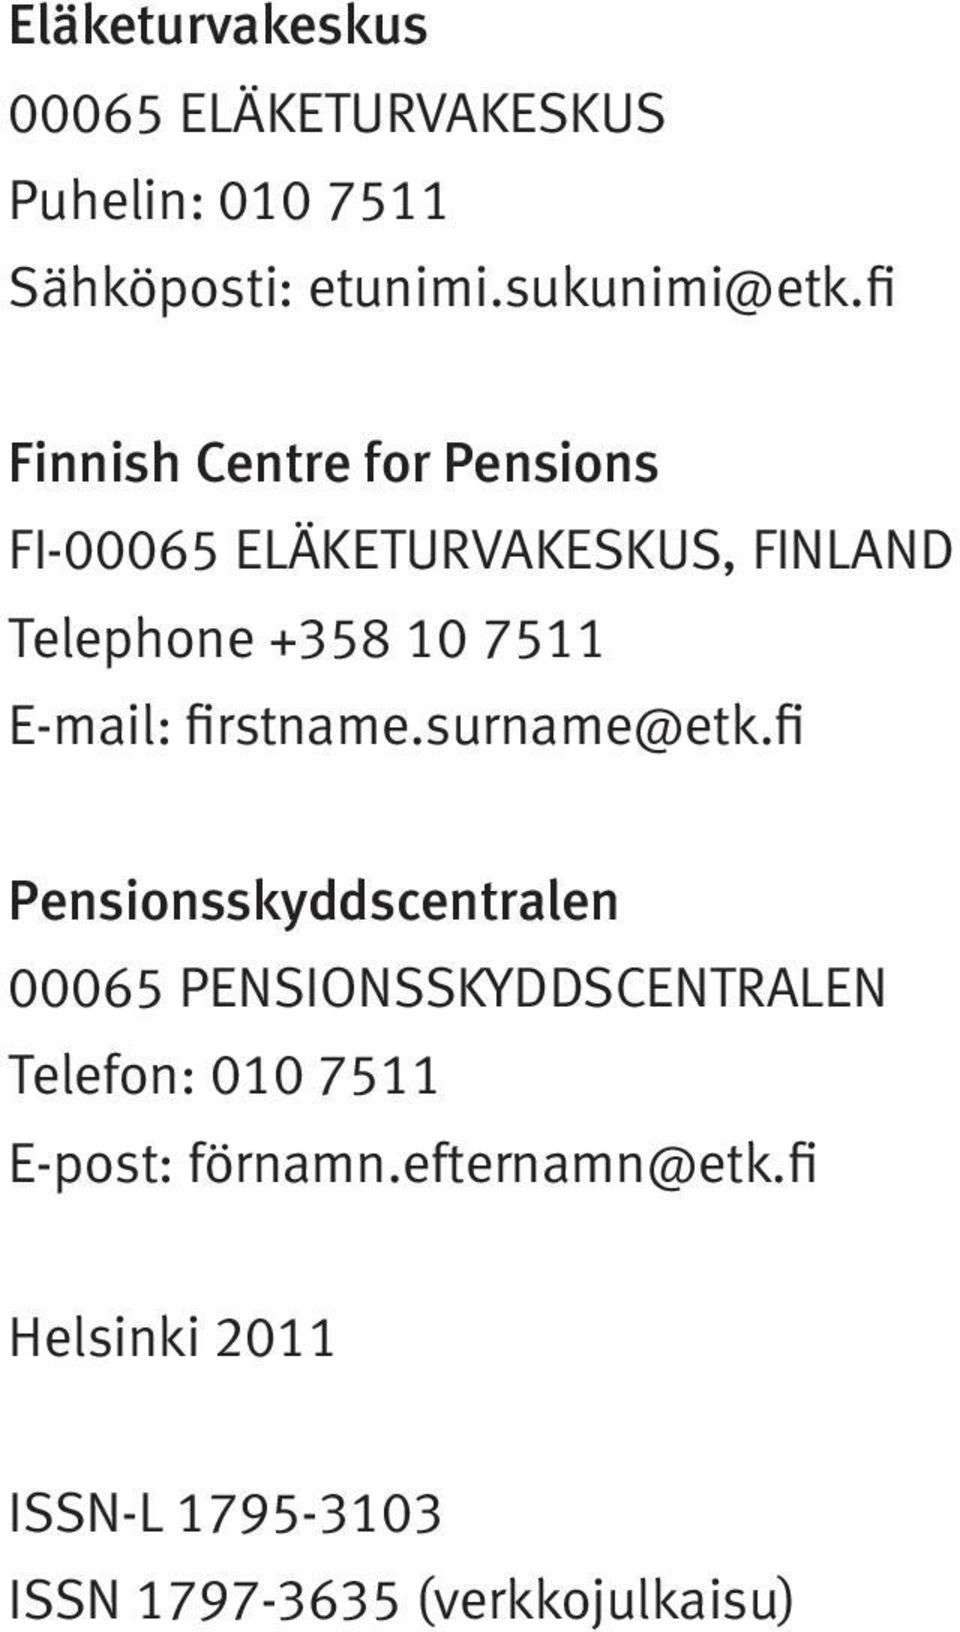 E-mail: firstname.surname@etk.